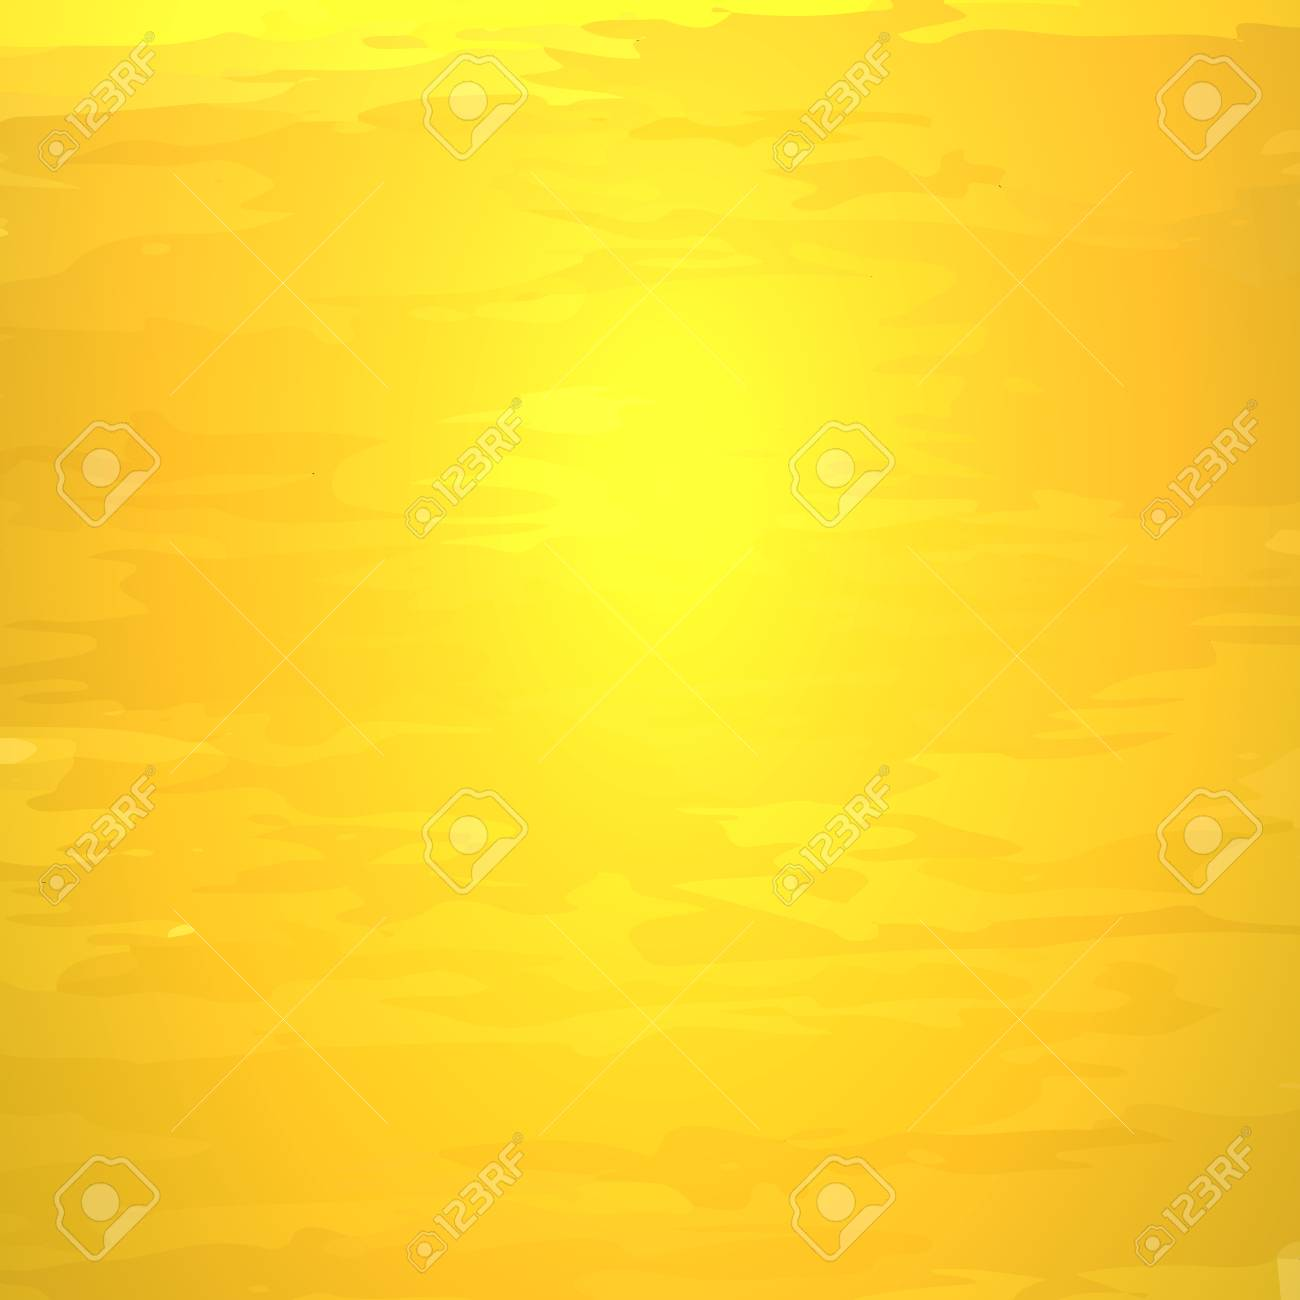 31370a45c29 Vector - Vector Golden Texture Background,Gold Shining Metallic Backdrop, Bright  Yellow Color.